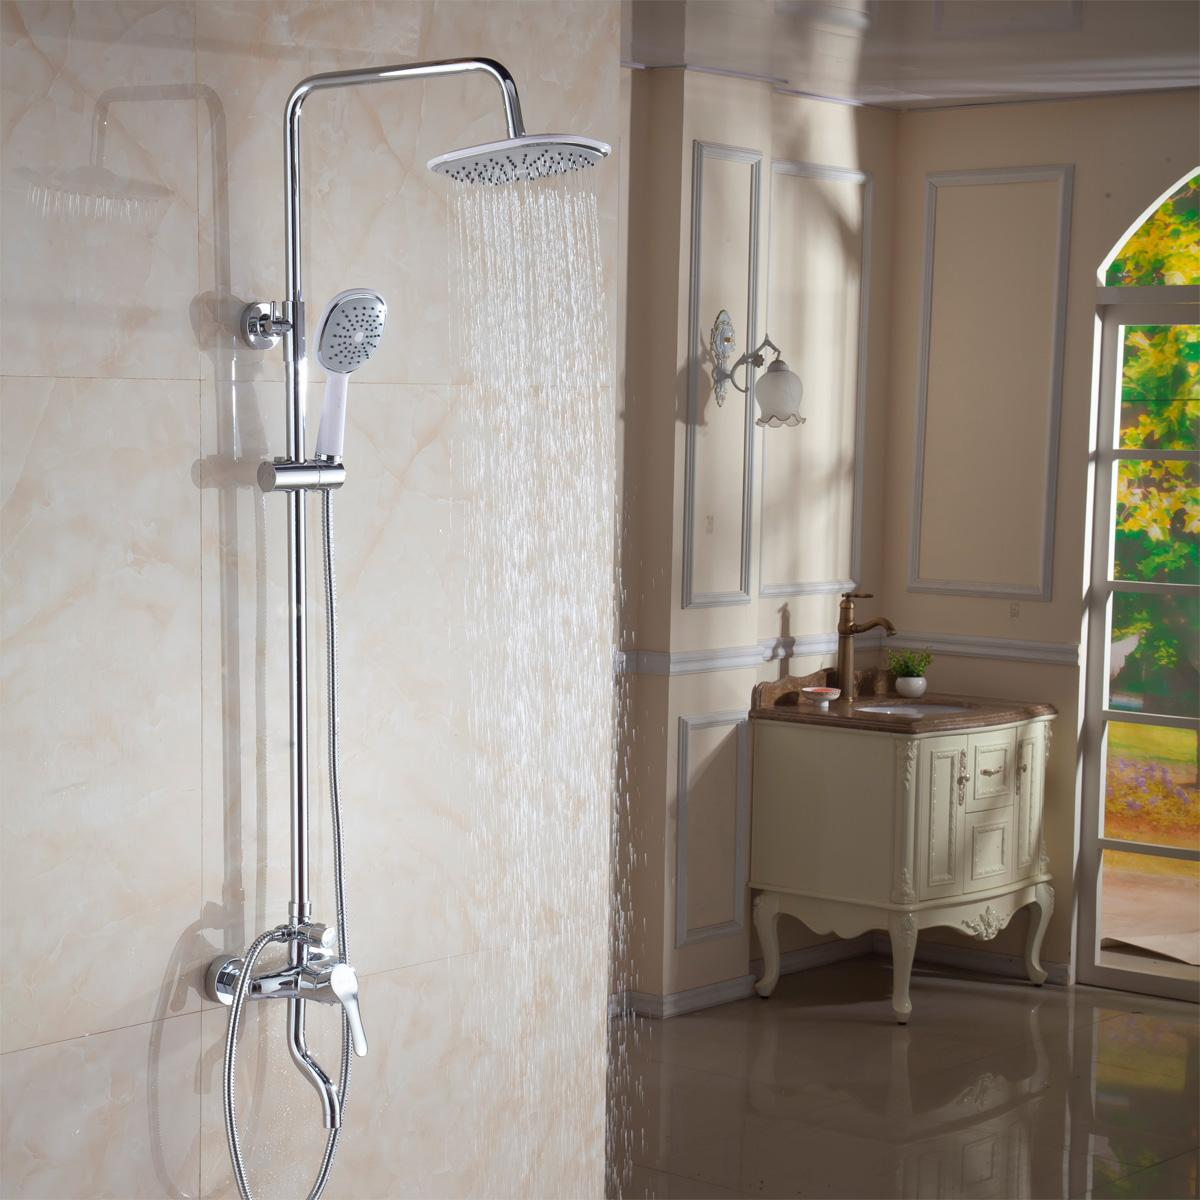 2019 The Bright Sun Rain Shower Copper Set Off Water Toilet Shower Bathroom Products From A380243900 45 23 Dhgate Com